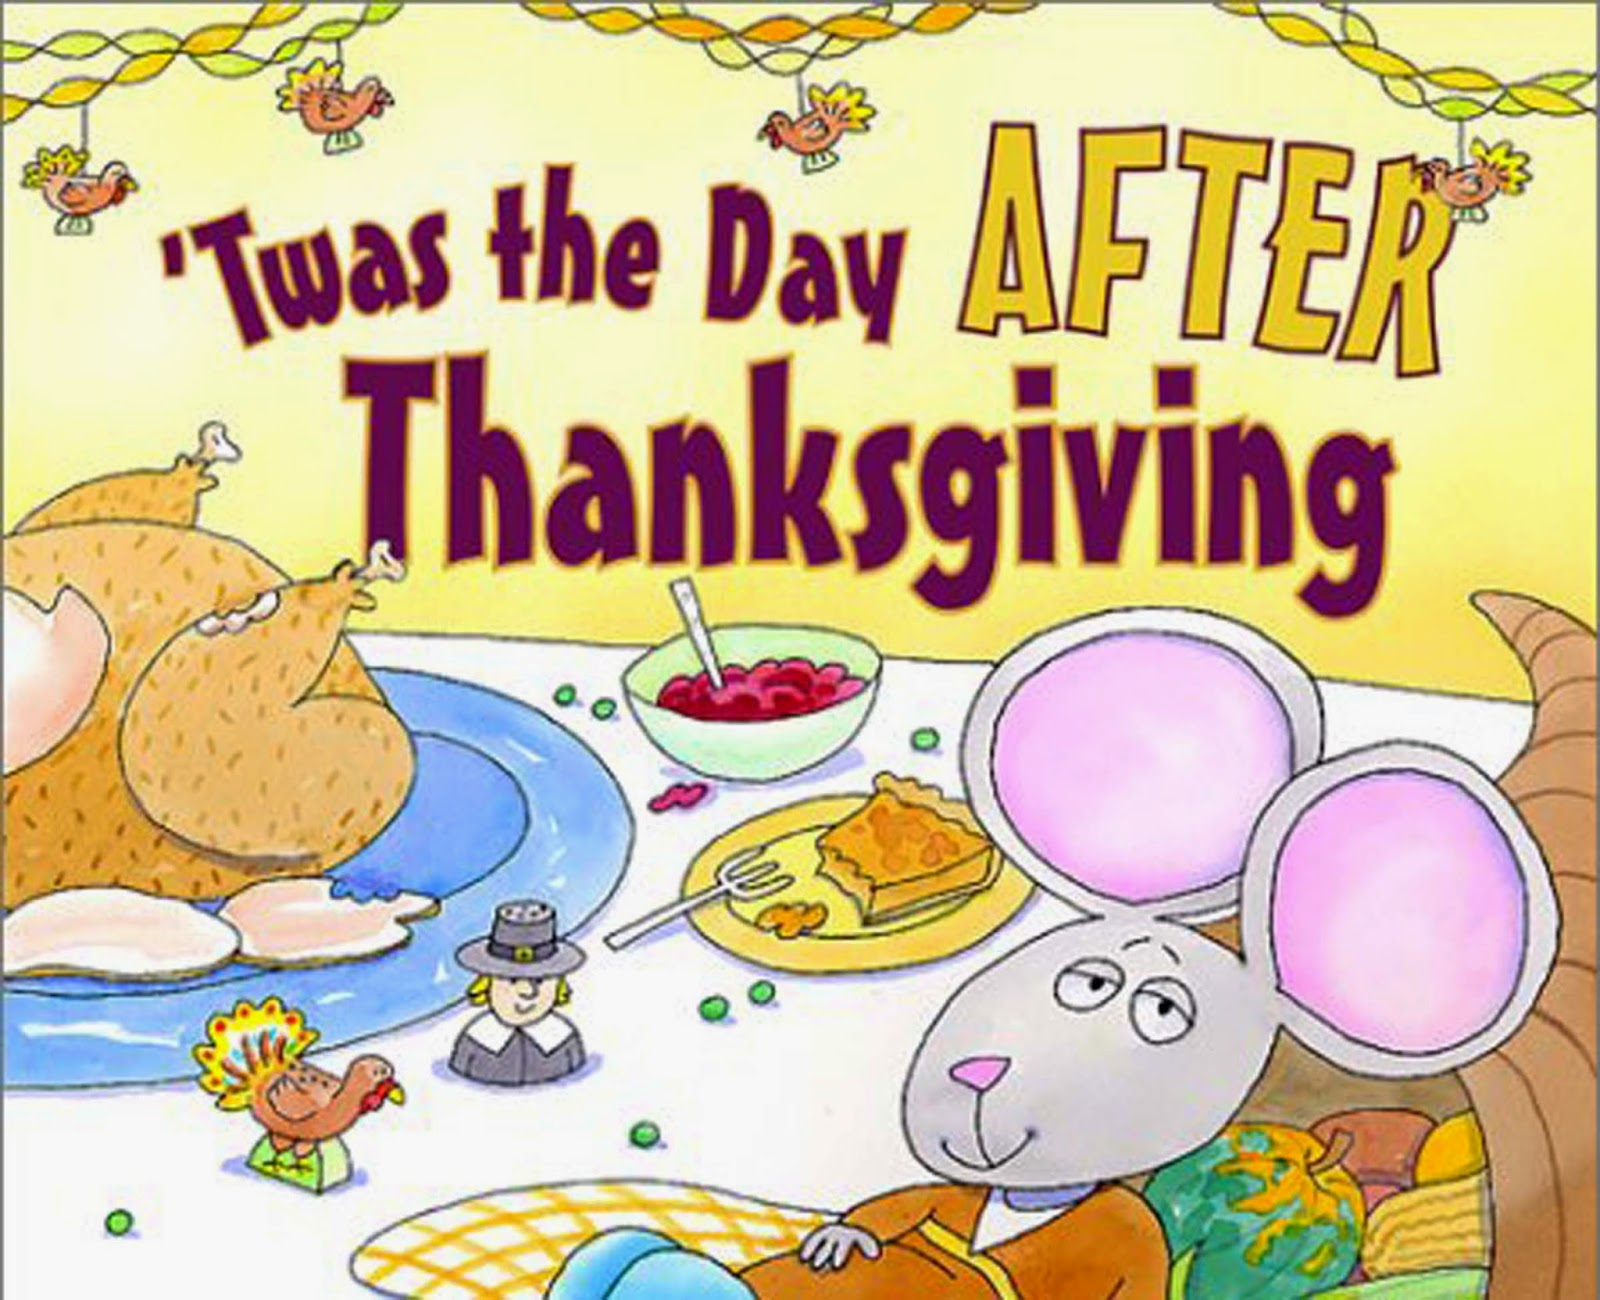 Happy Thanksgiving 2018 Images: HD Wallpapers, Pictures ... |Day After Thanksgiving